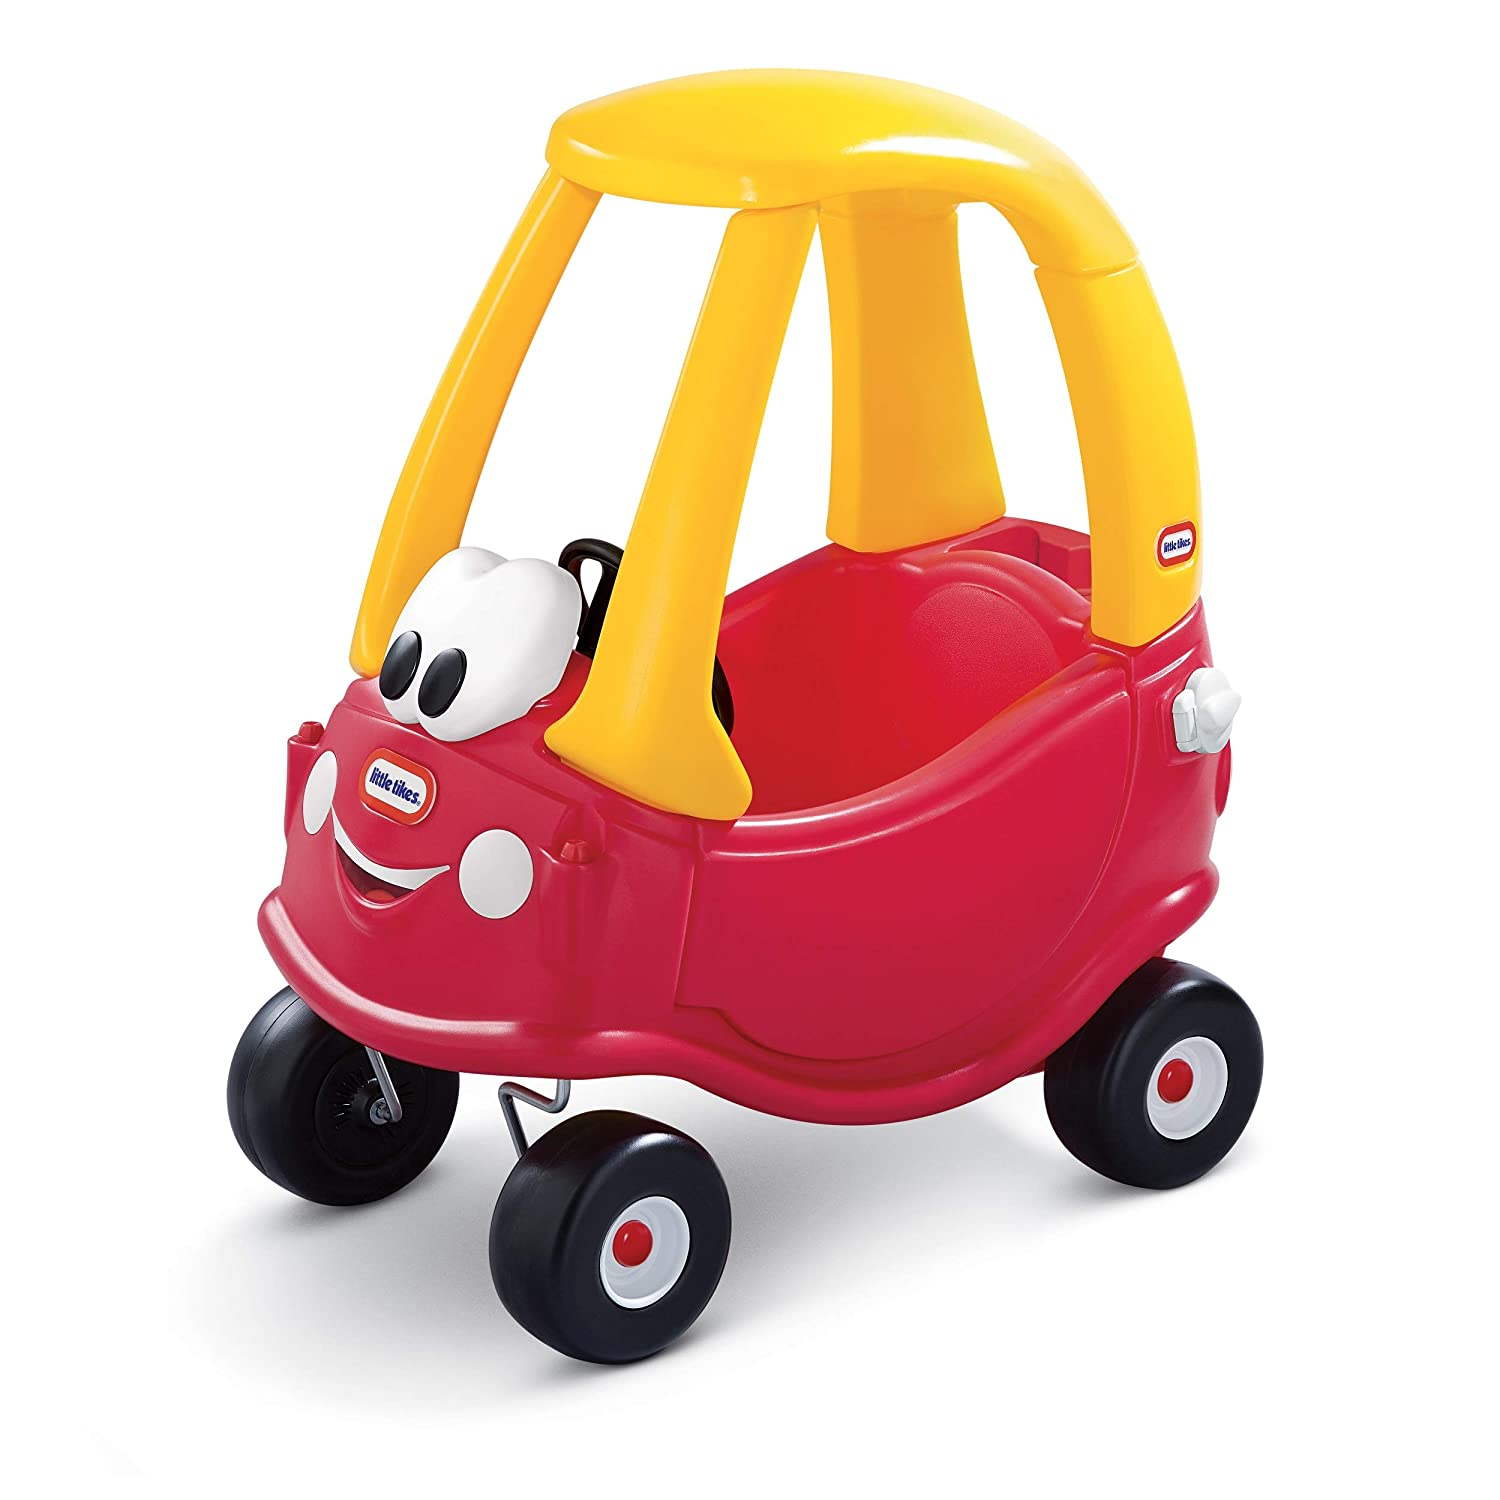 Top 15 Best Riding Toys for 1 Year Olds Reviews in 2020 11